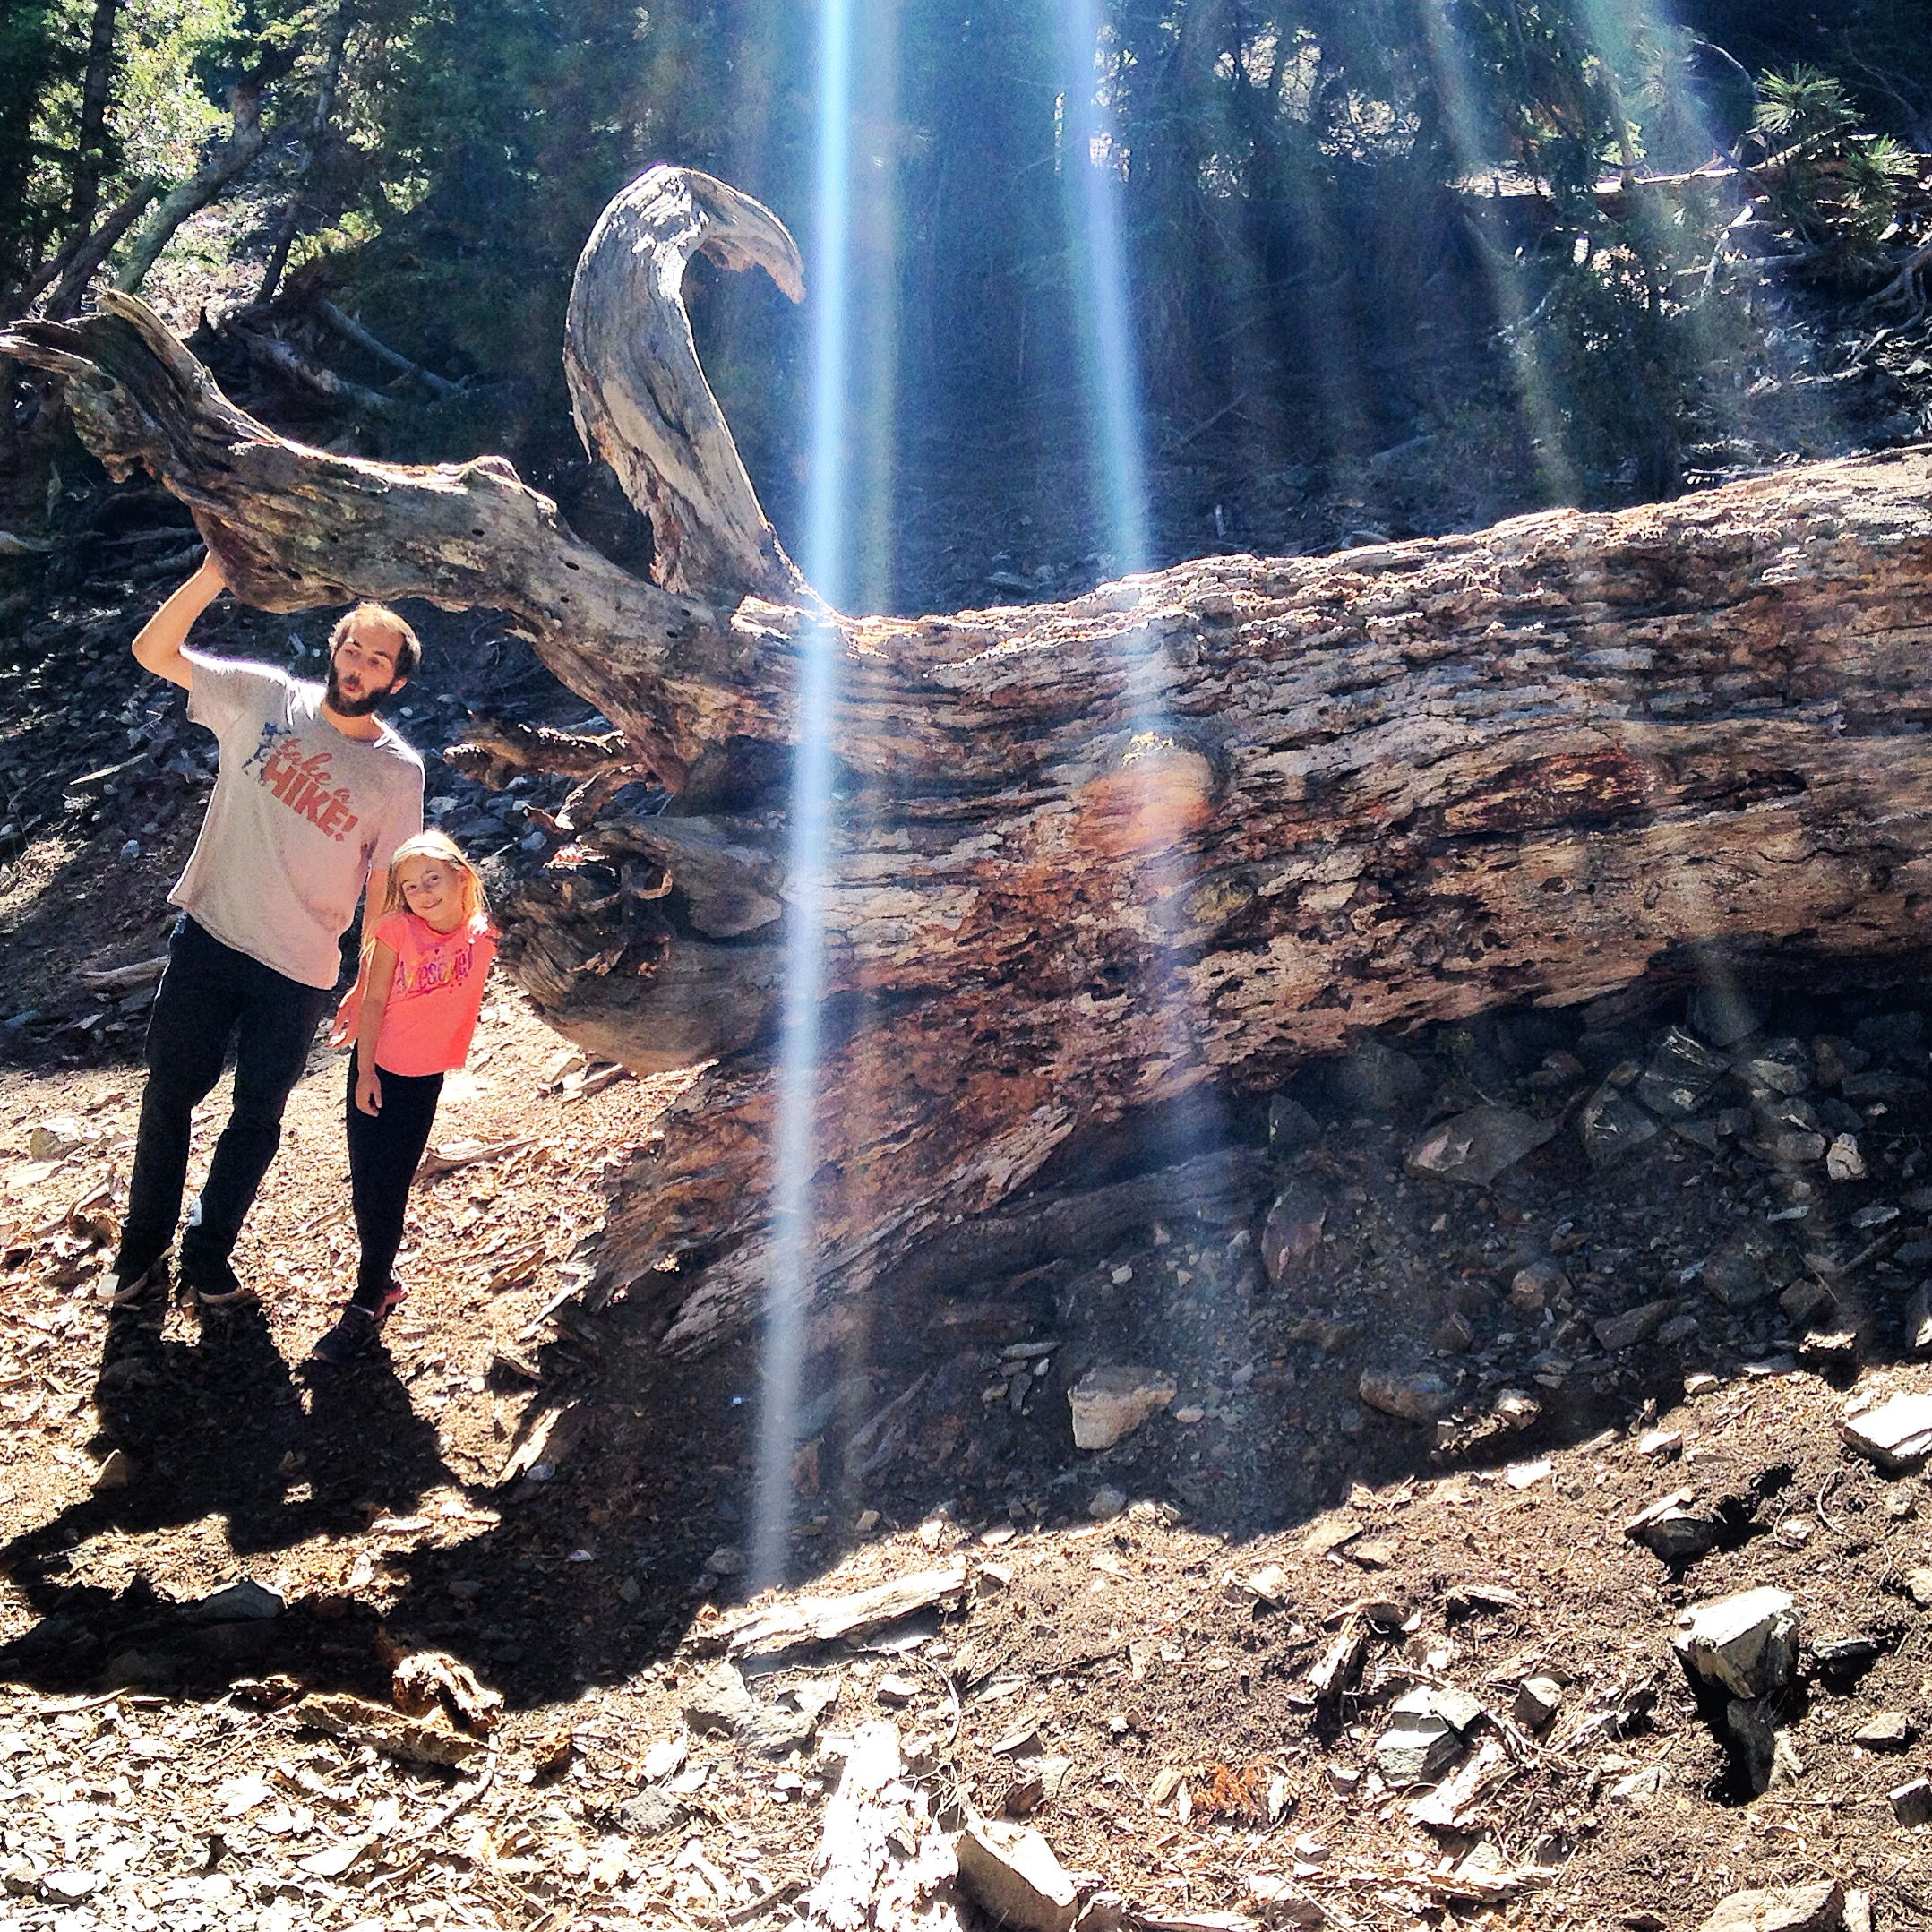 Within the first couple hundred feet of the hiking trail there were several enormous fallen trees. We had fun climbing on them.